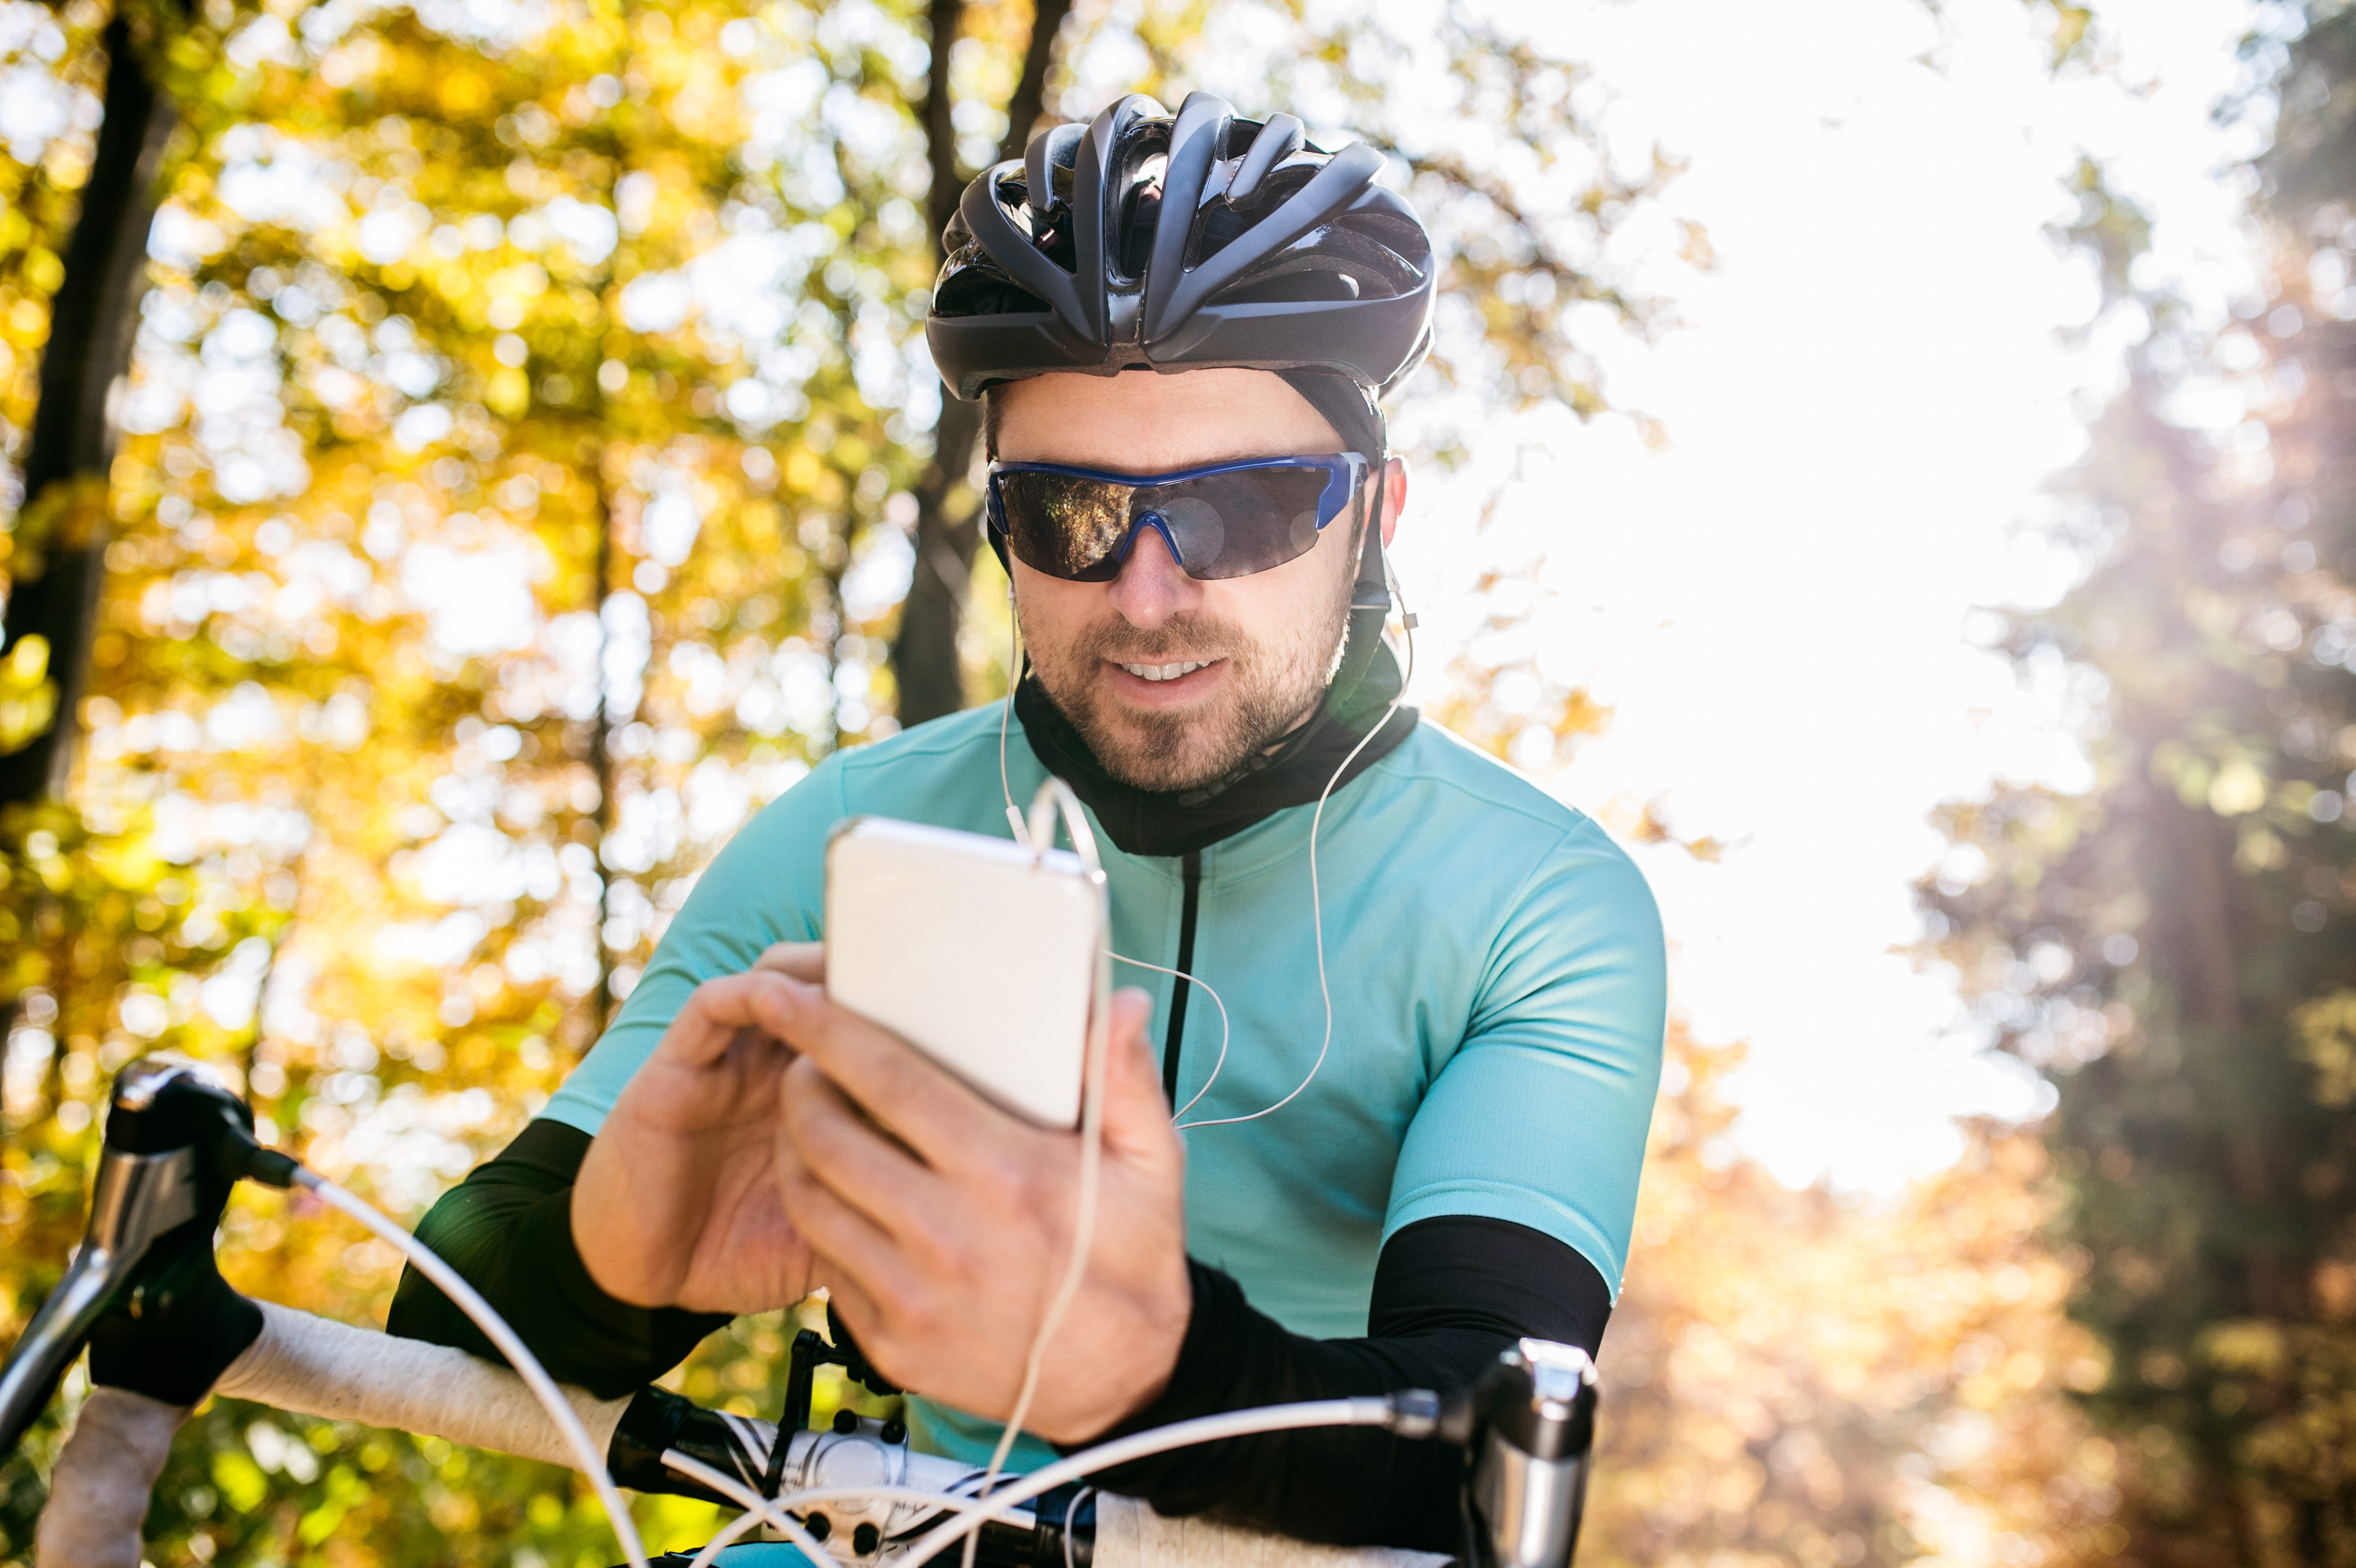 Young sportsman riding bicycle, holding smartphone, sunny autumn